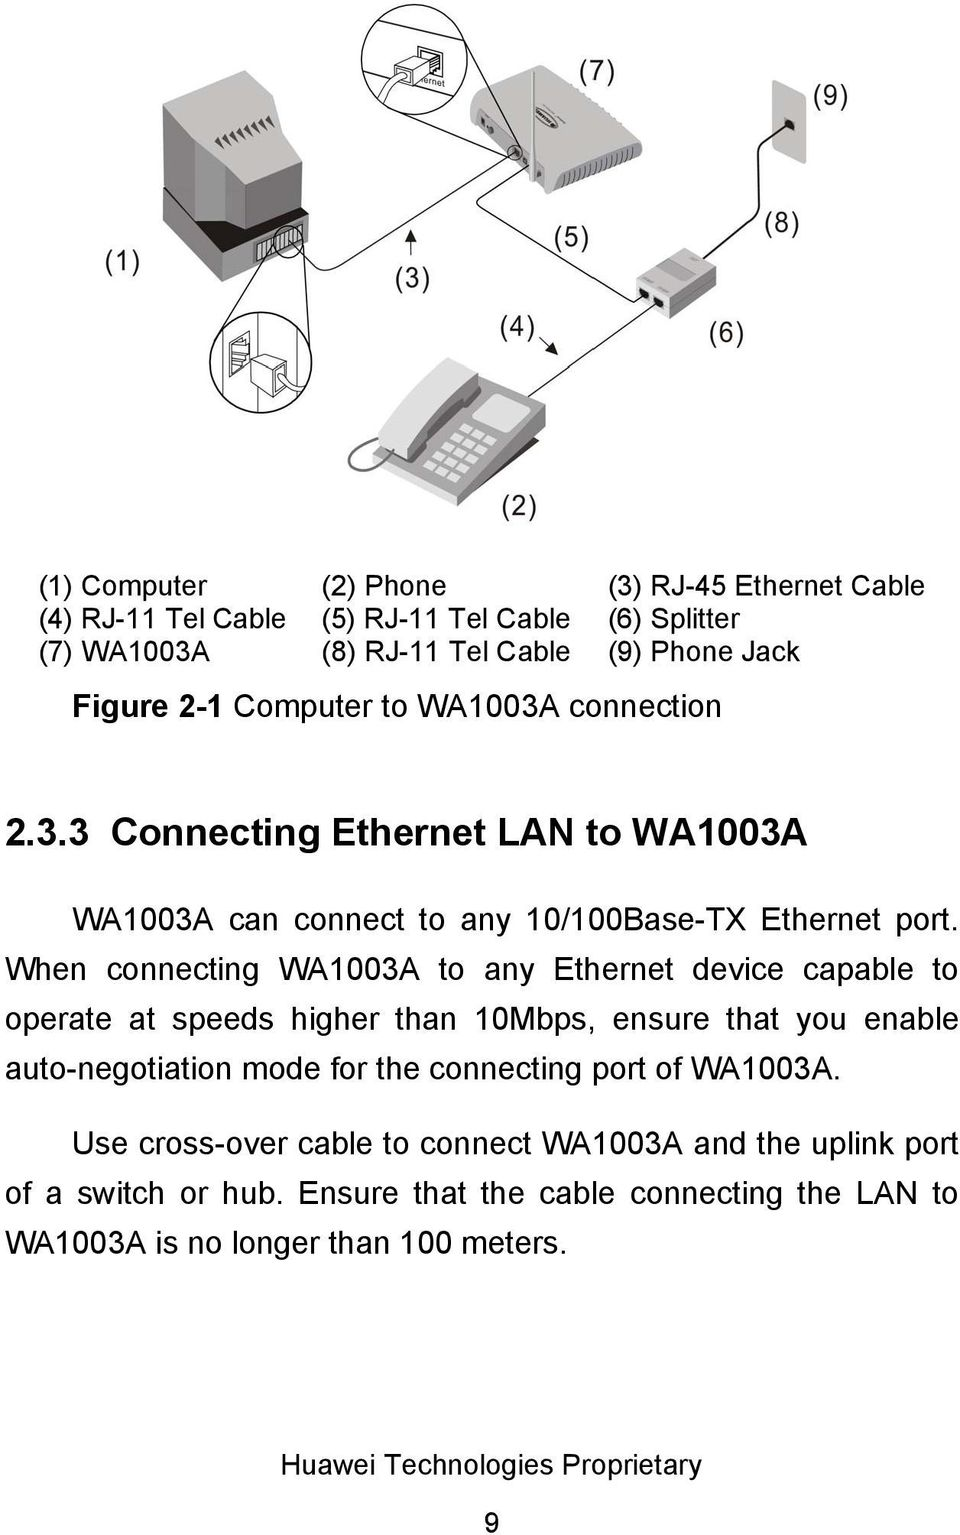 When connecting WA1003A to any Ethernet device capable to operate at speeds higher than 10Mbps, ensure that you enable auto-negotiation mode for the